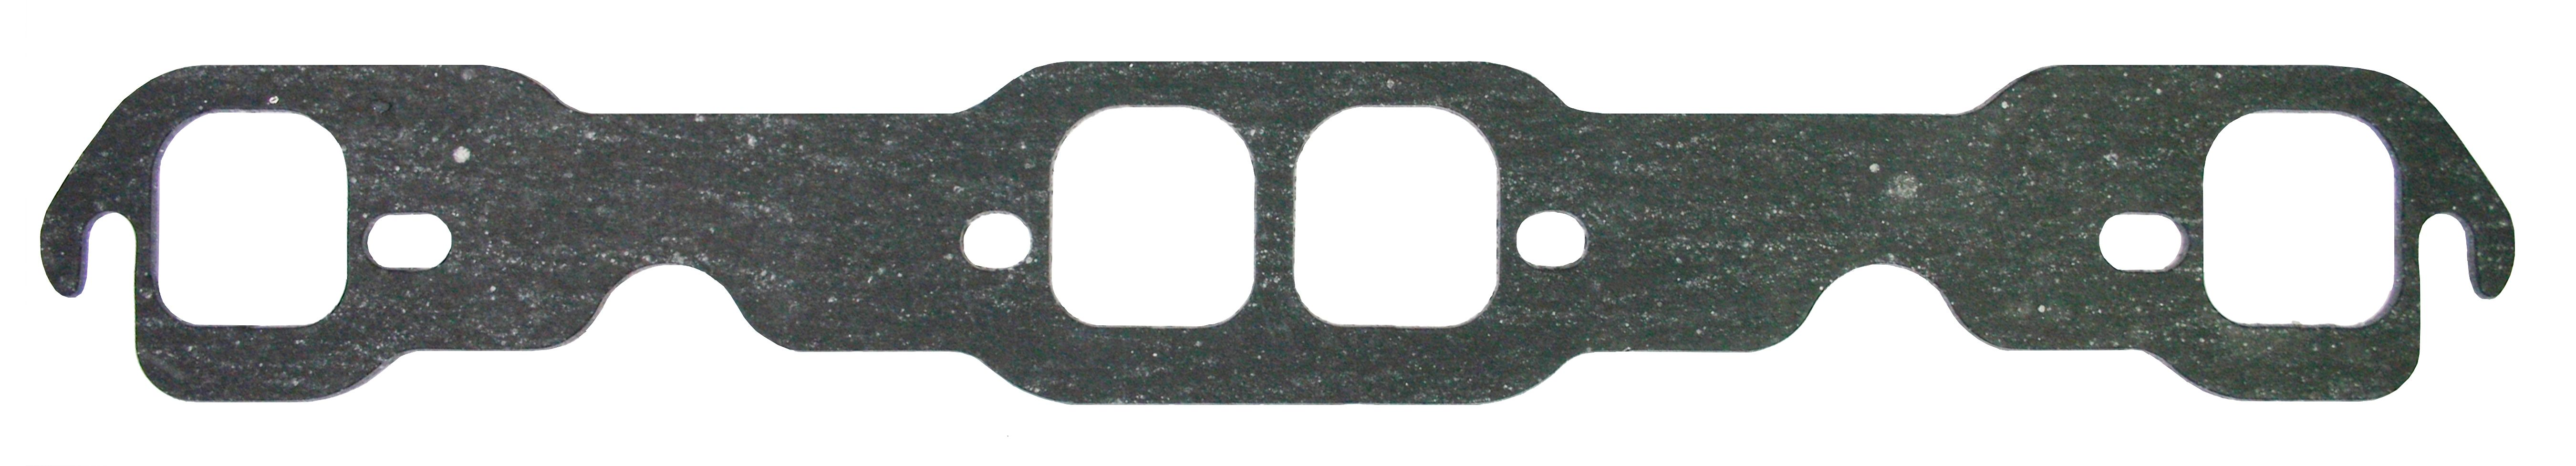 604 Crate Gasket